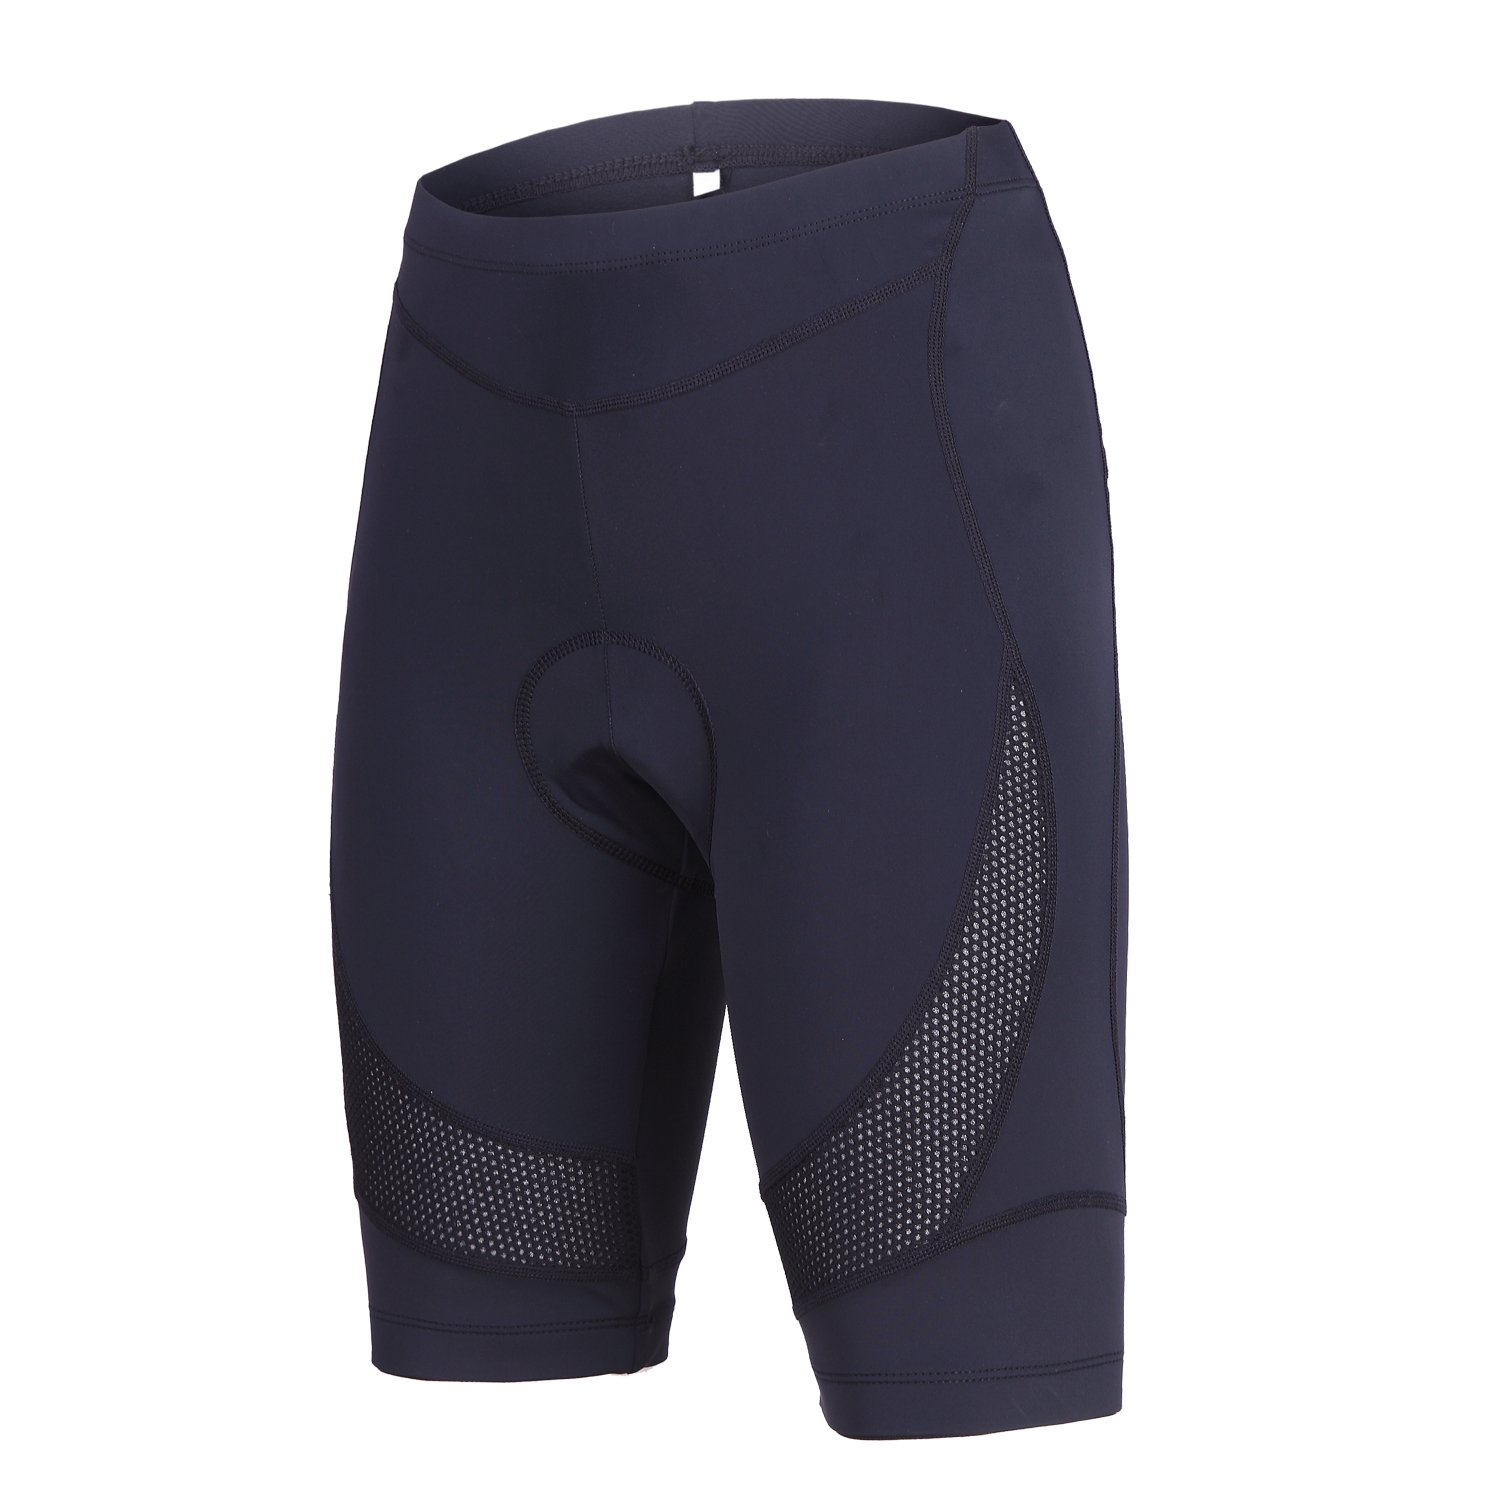 b1fbdfbed Amazon.com  beroy Womens Bike Shorts with 3D Gel Padded